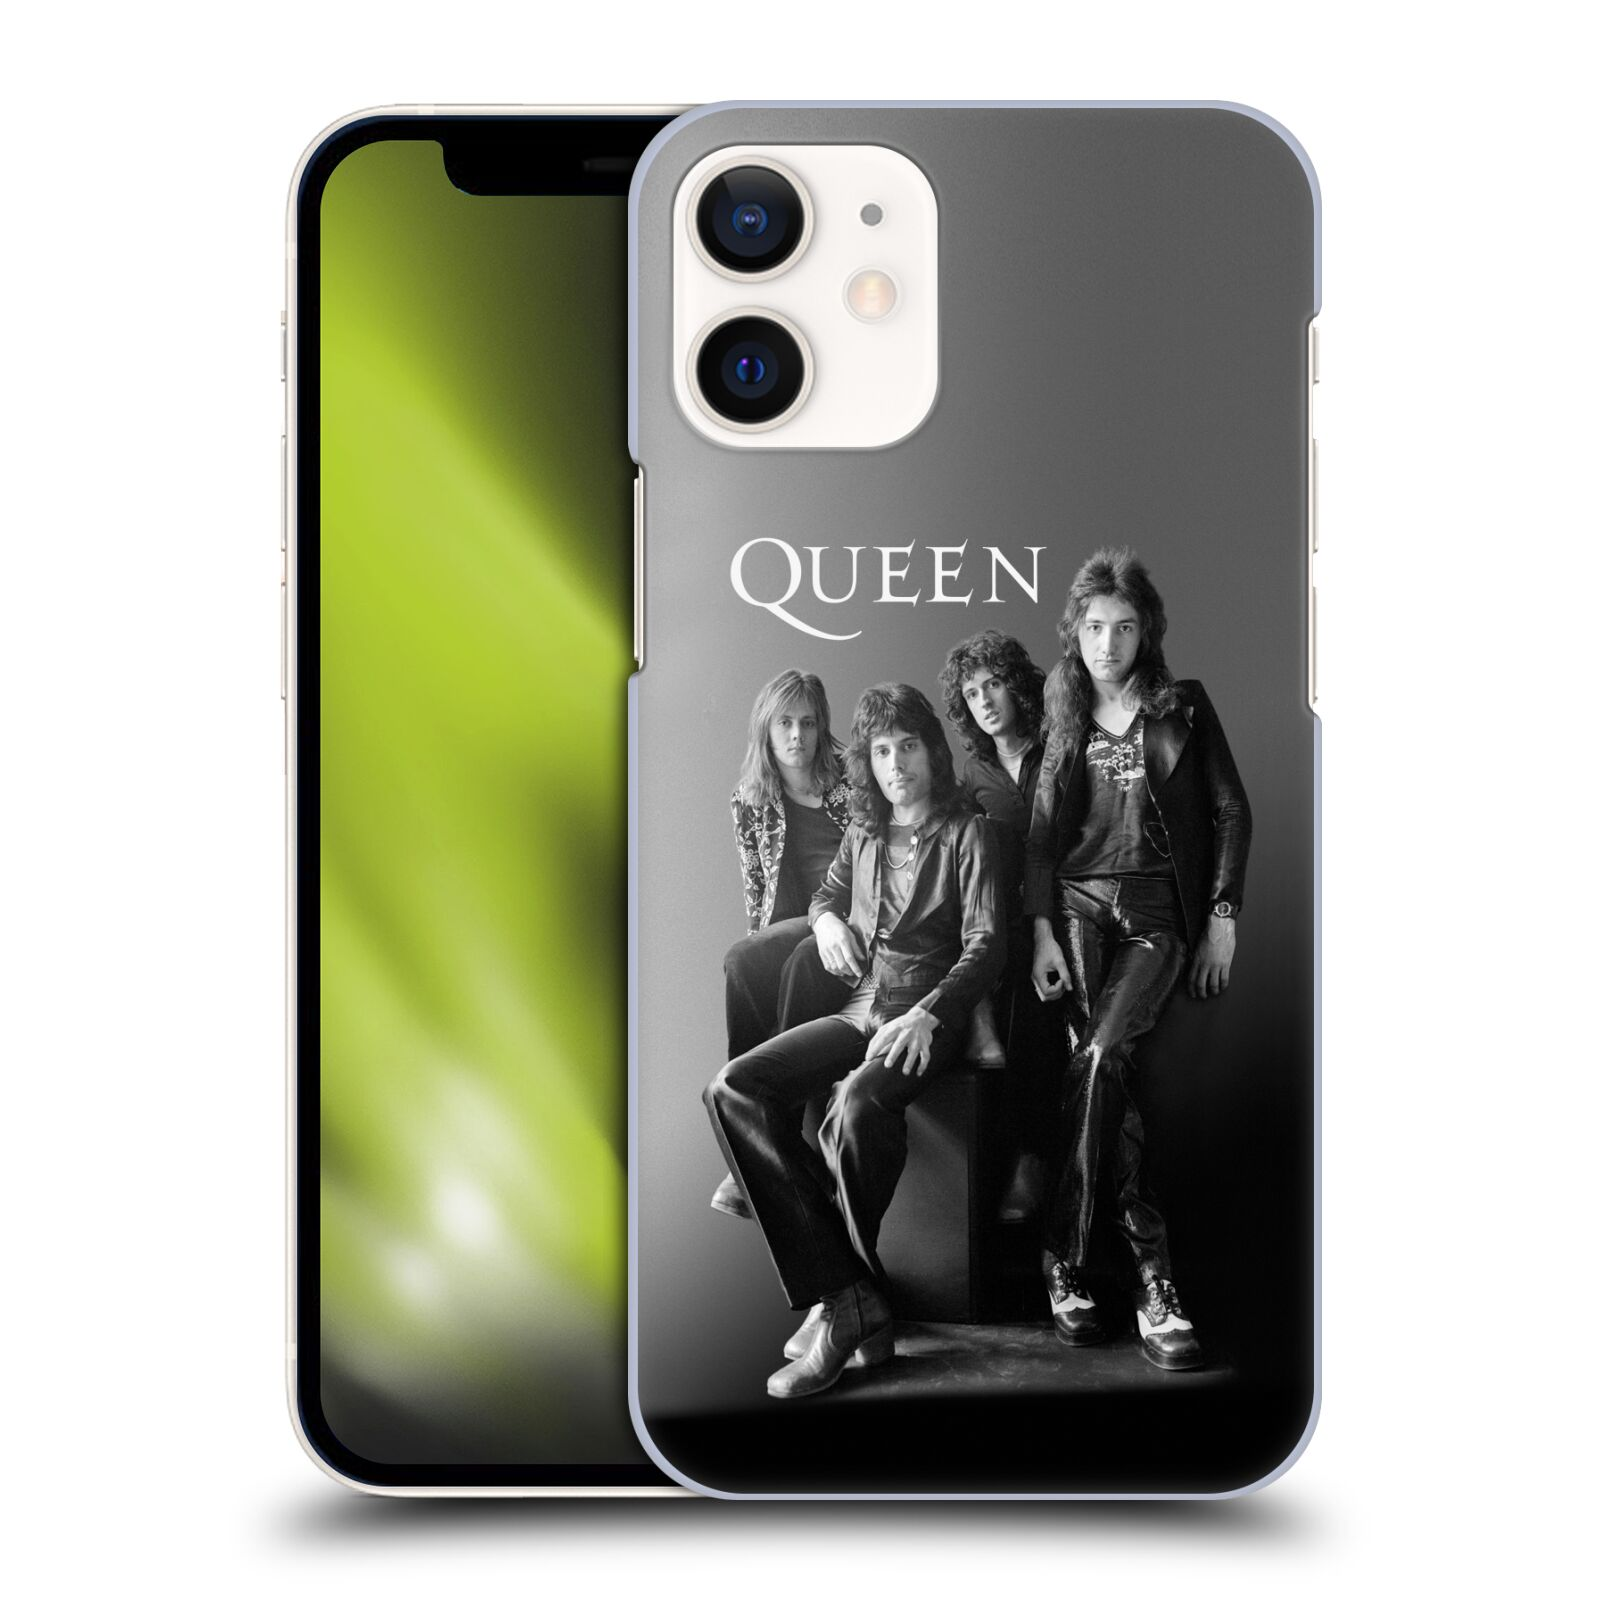 Plastové pouzdro na mobil Apple iPhone 12 Mini - Head Case - Queen - Skupina